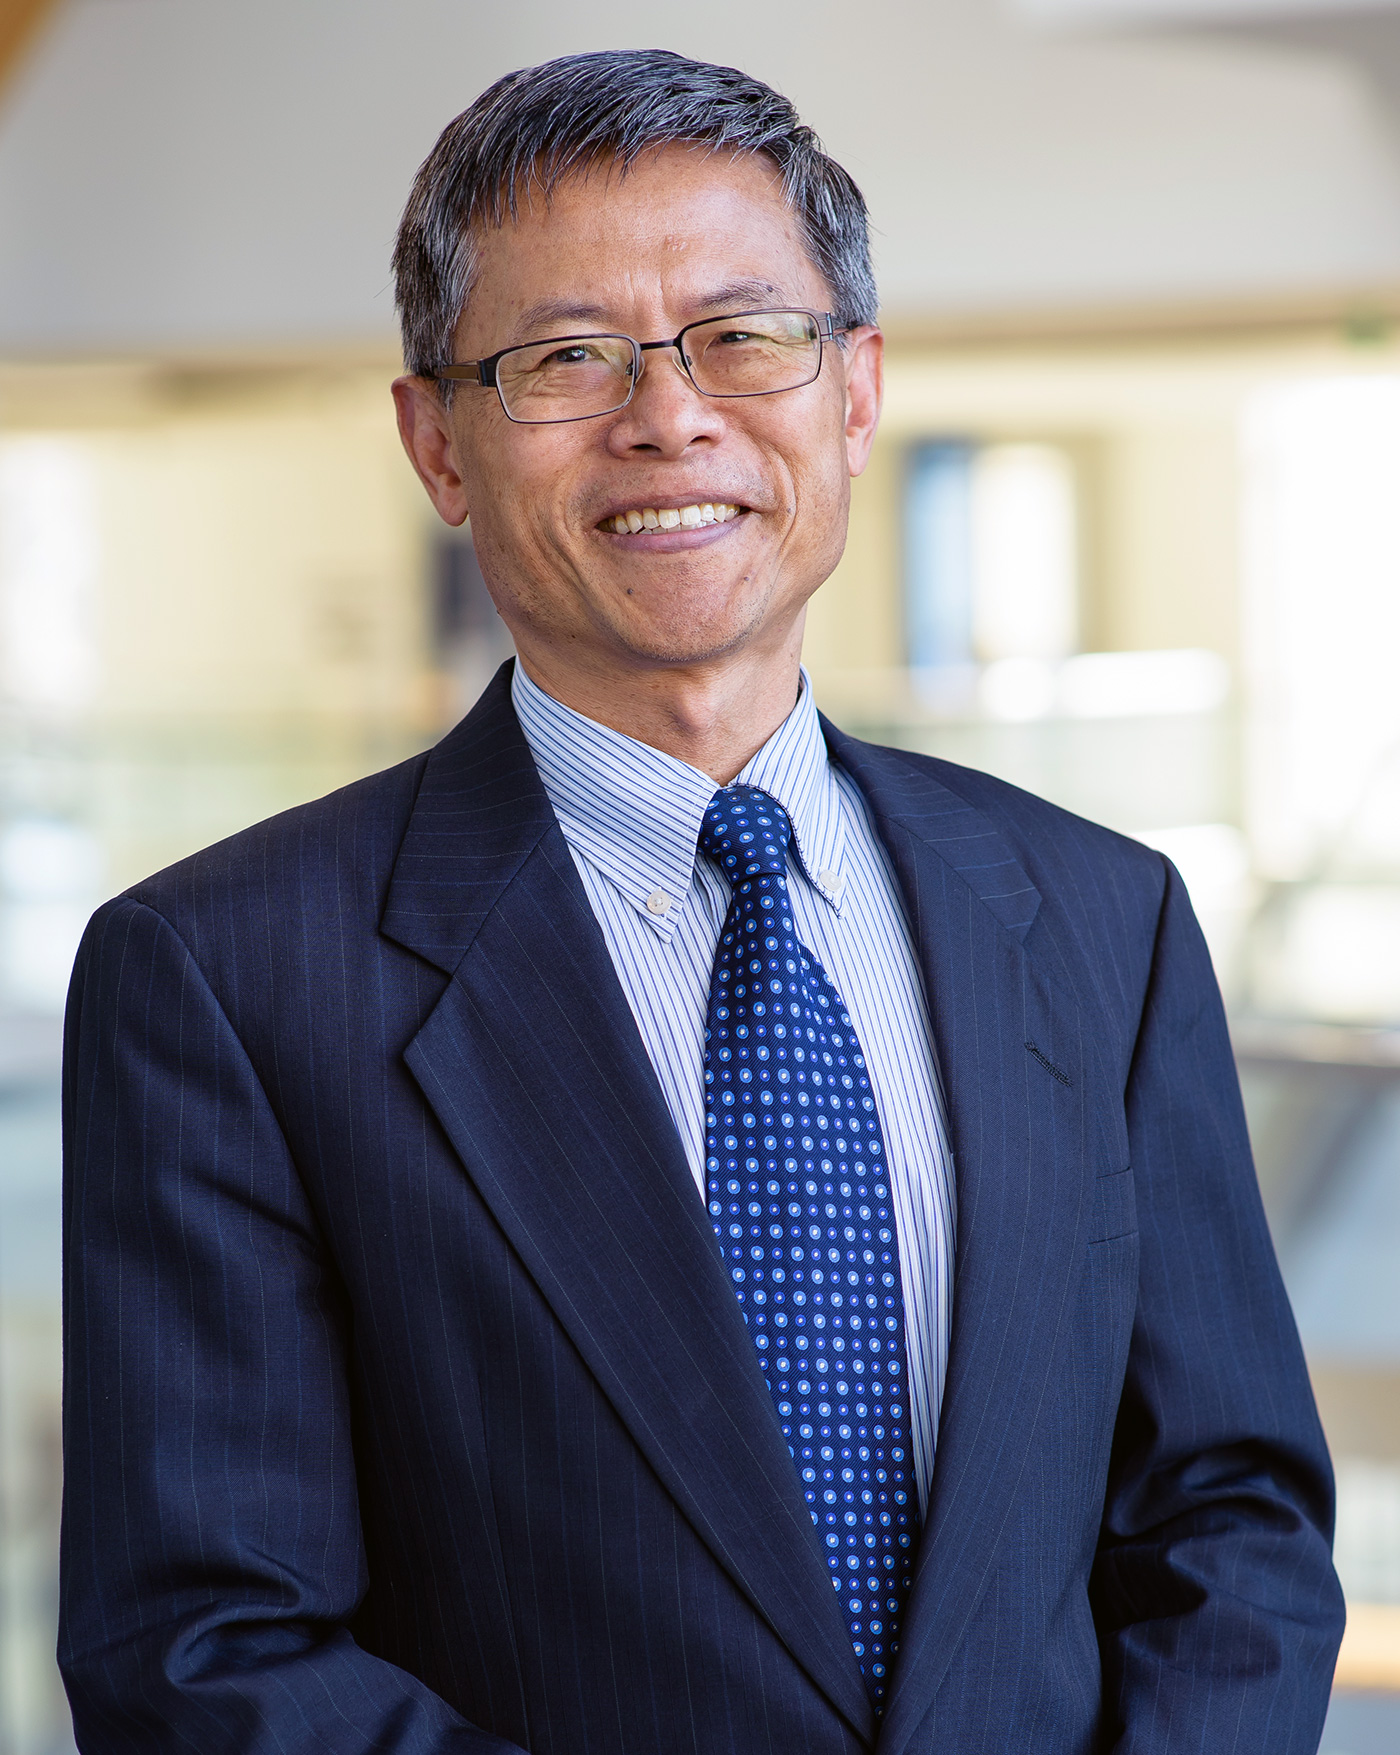 Edward T. Chen is a Professor in the Manning School of Business - Operations and Information Systems Department at UMass Lowell.